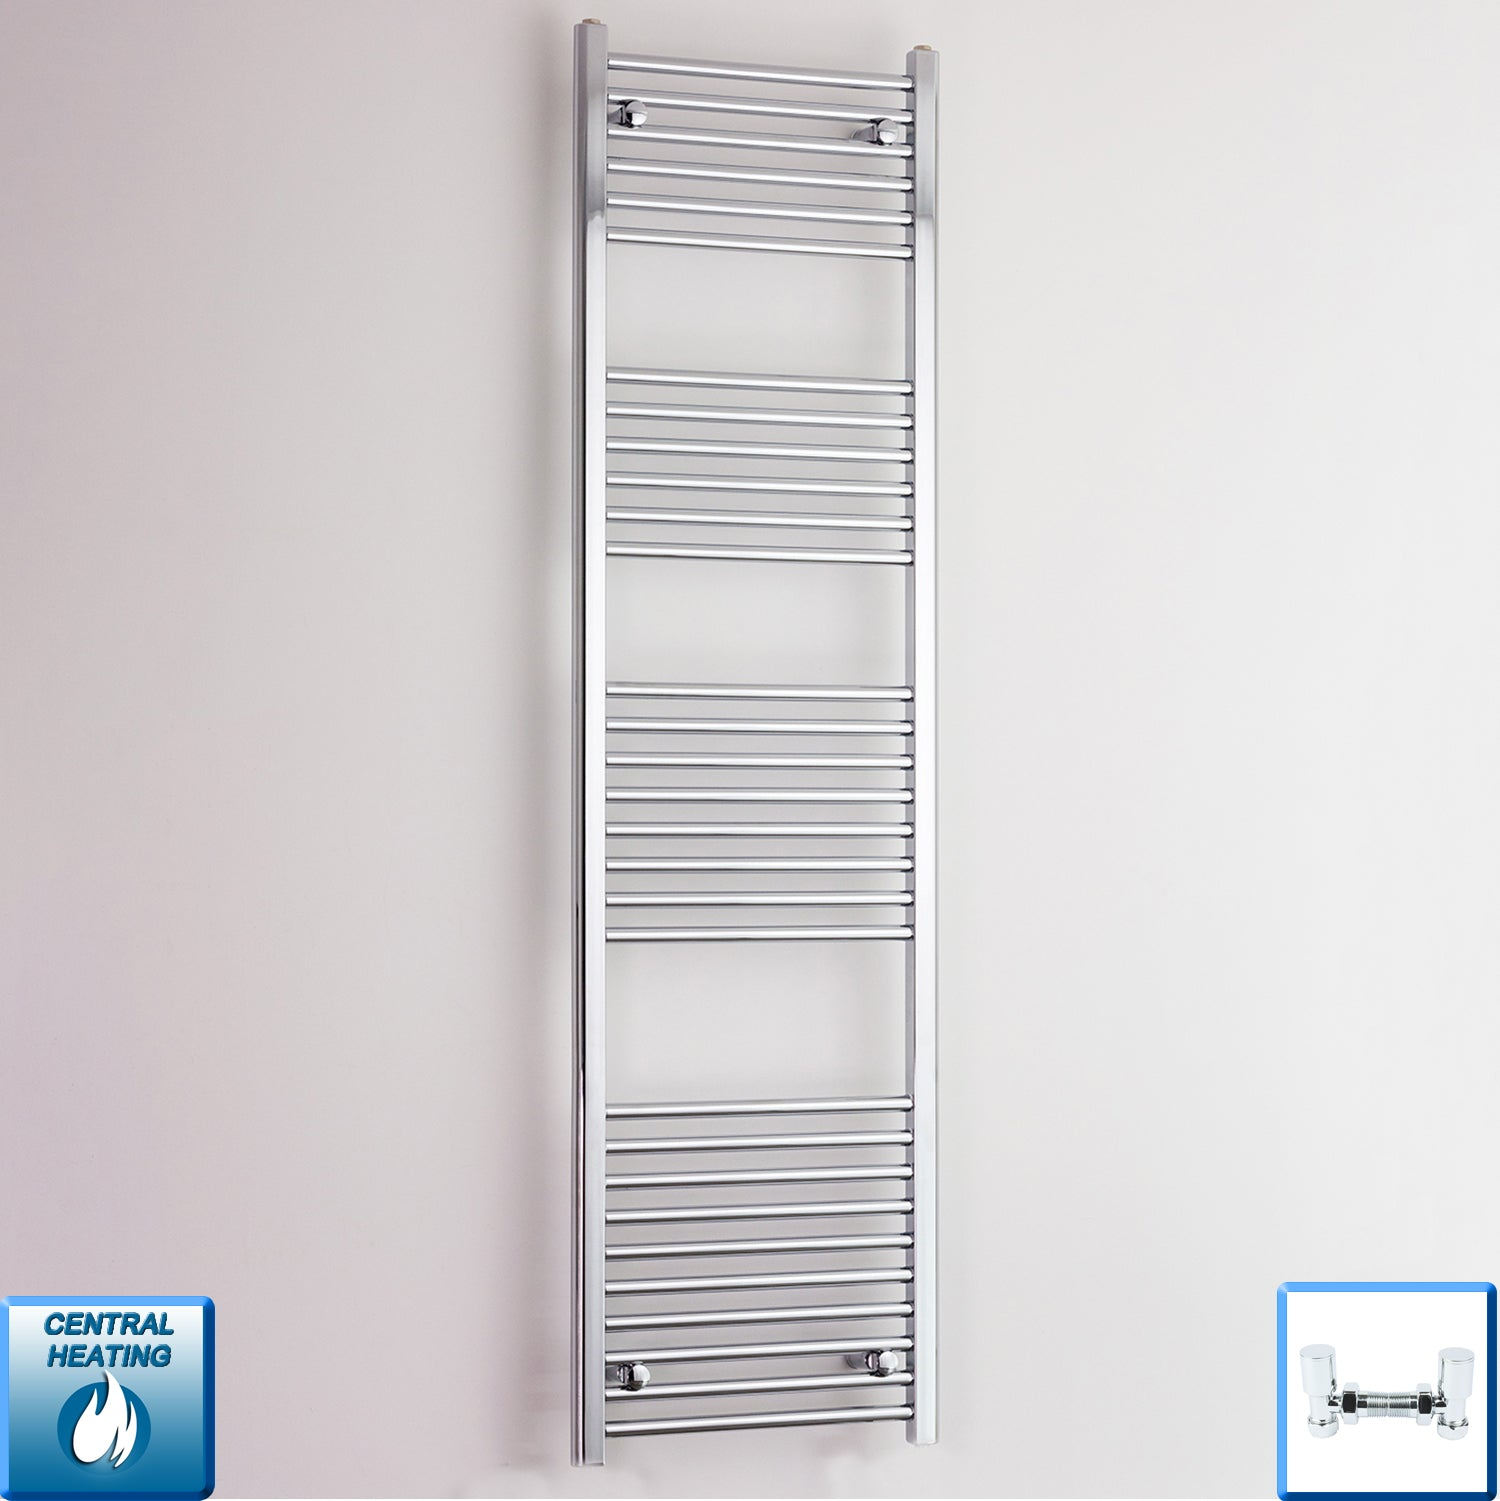 600mm Wide 1800mm High Flat Chrome Heated Towel Rail Radiator HTR,With Angled Valve